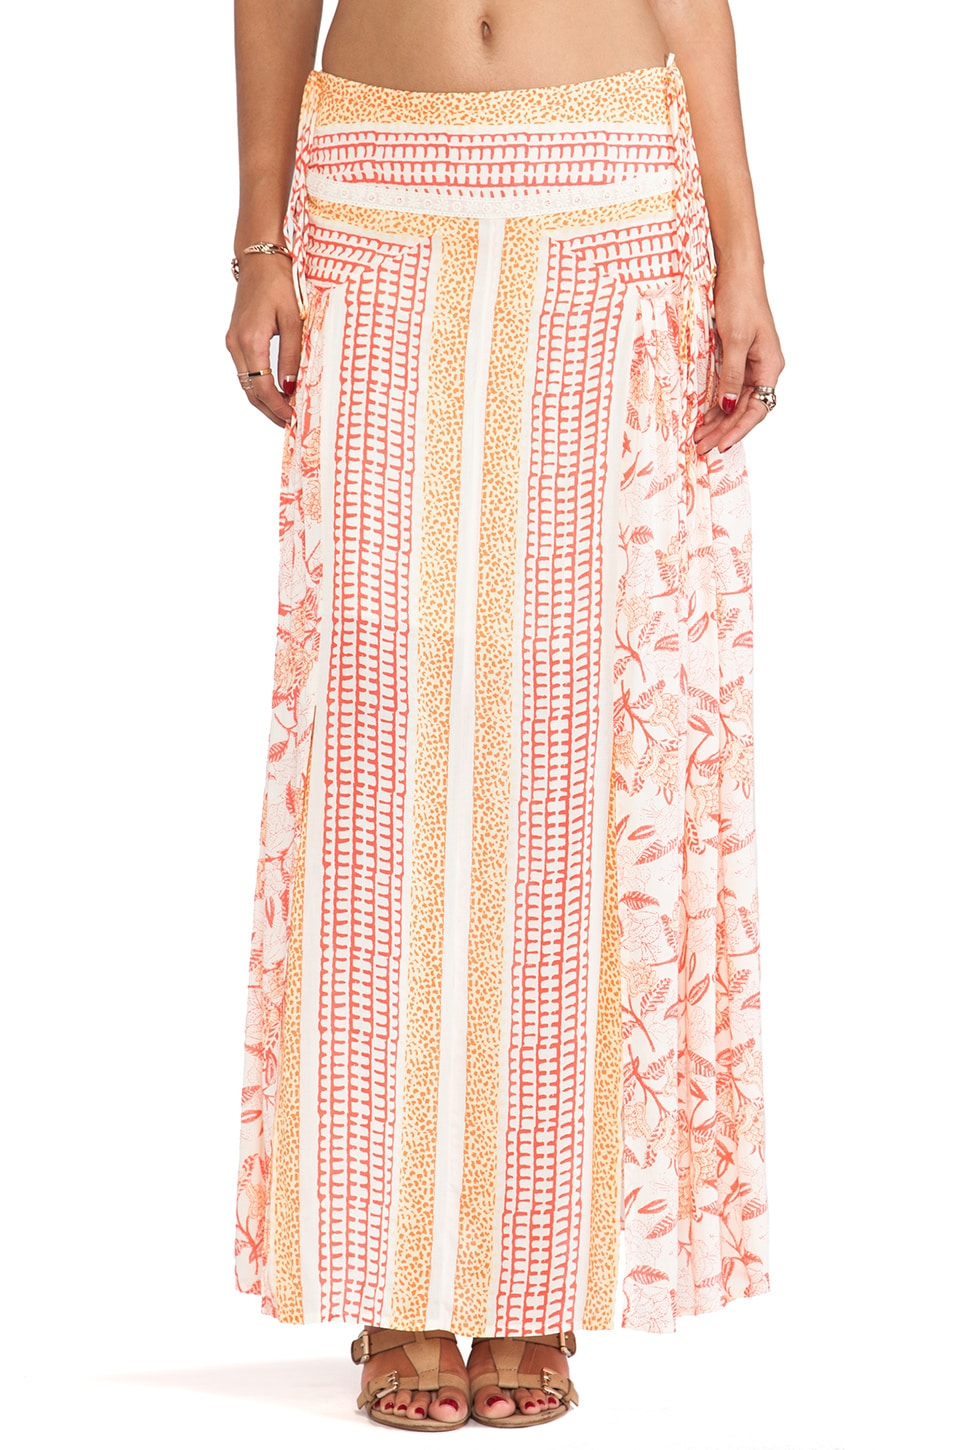 Free People Squared Off Convertible Skirt in Festival Combo